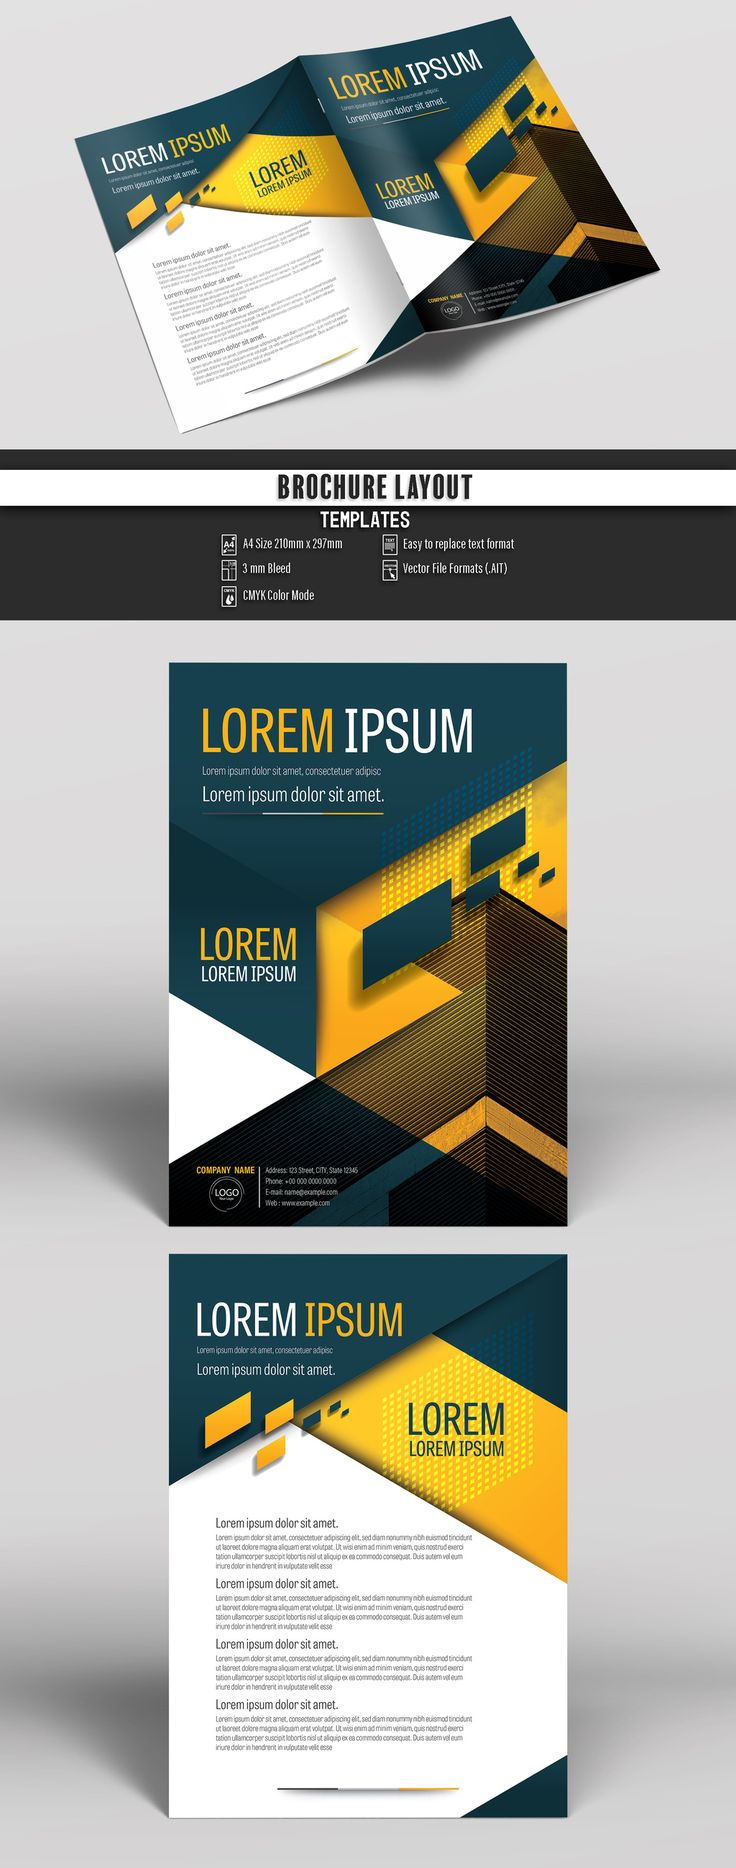 cover letter for bid proposal%0A Buy this stock template and explore similar templates at Adobe Stock   Brochure  Business  Proposal  Booklet  Flyer  Template  Design  Layout   Cover  Book